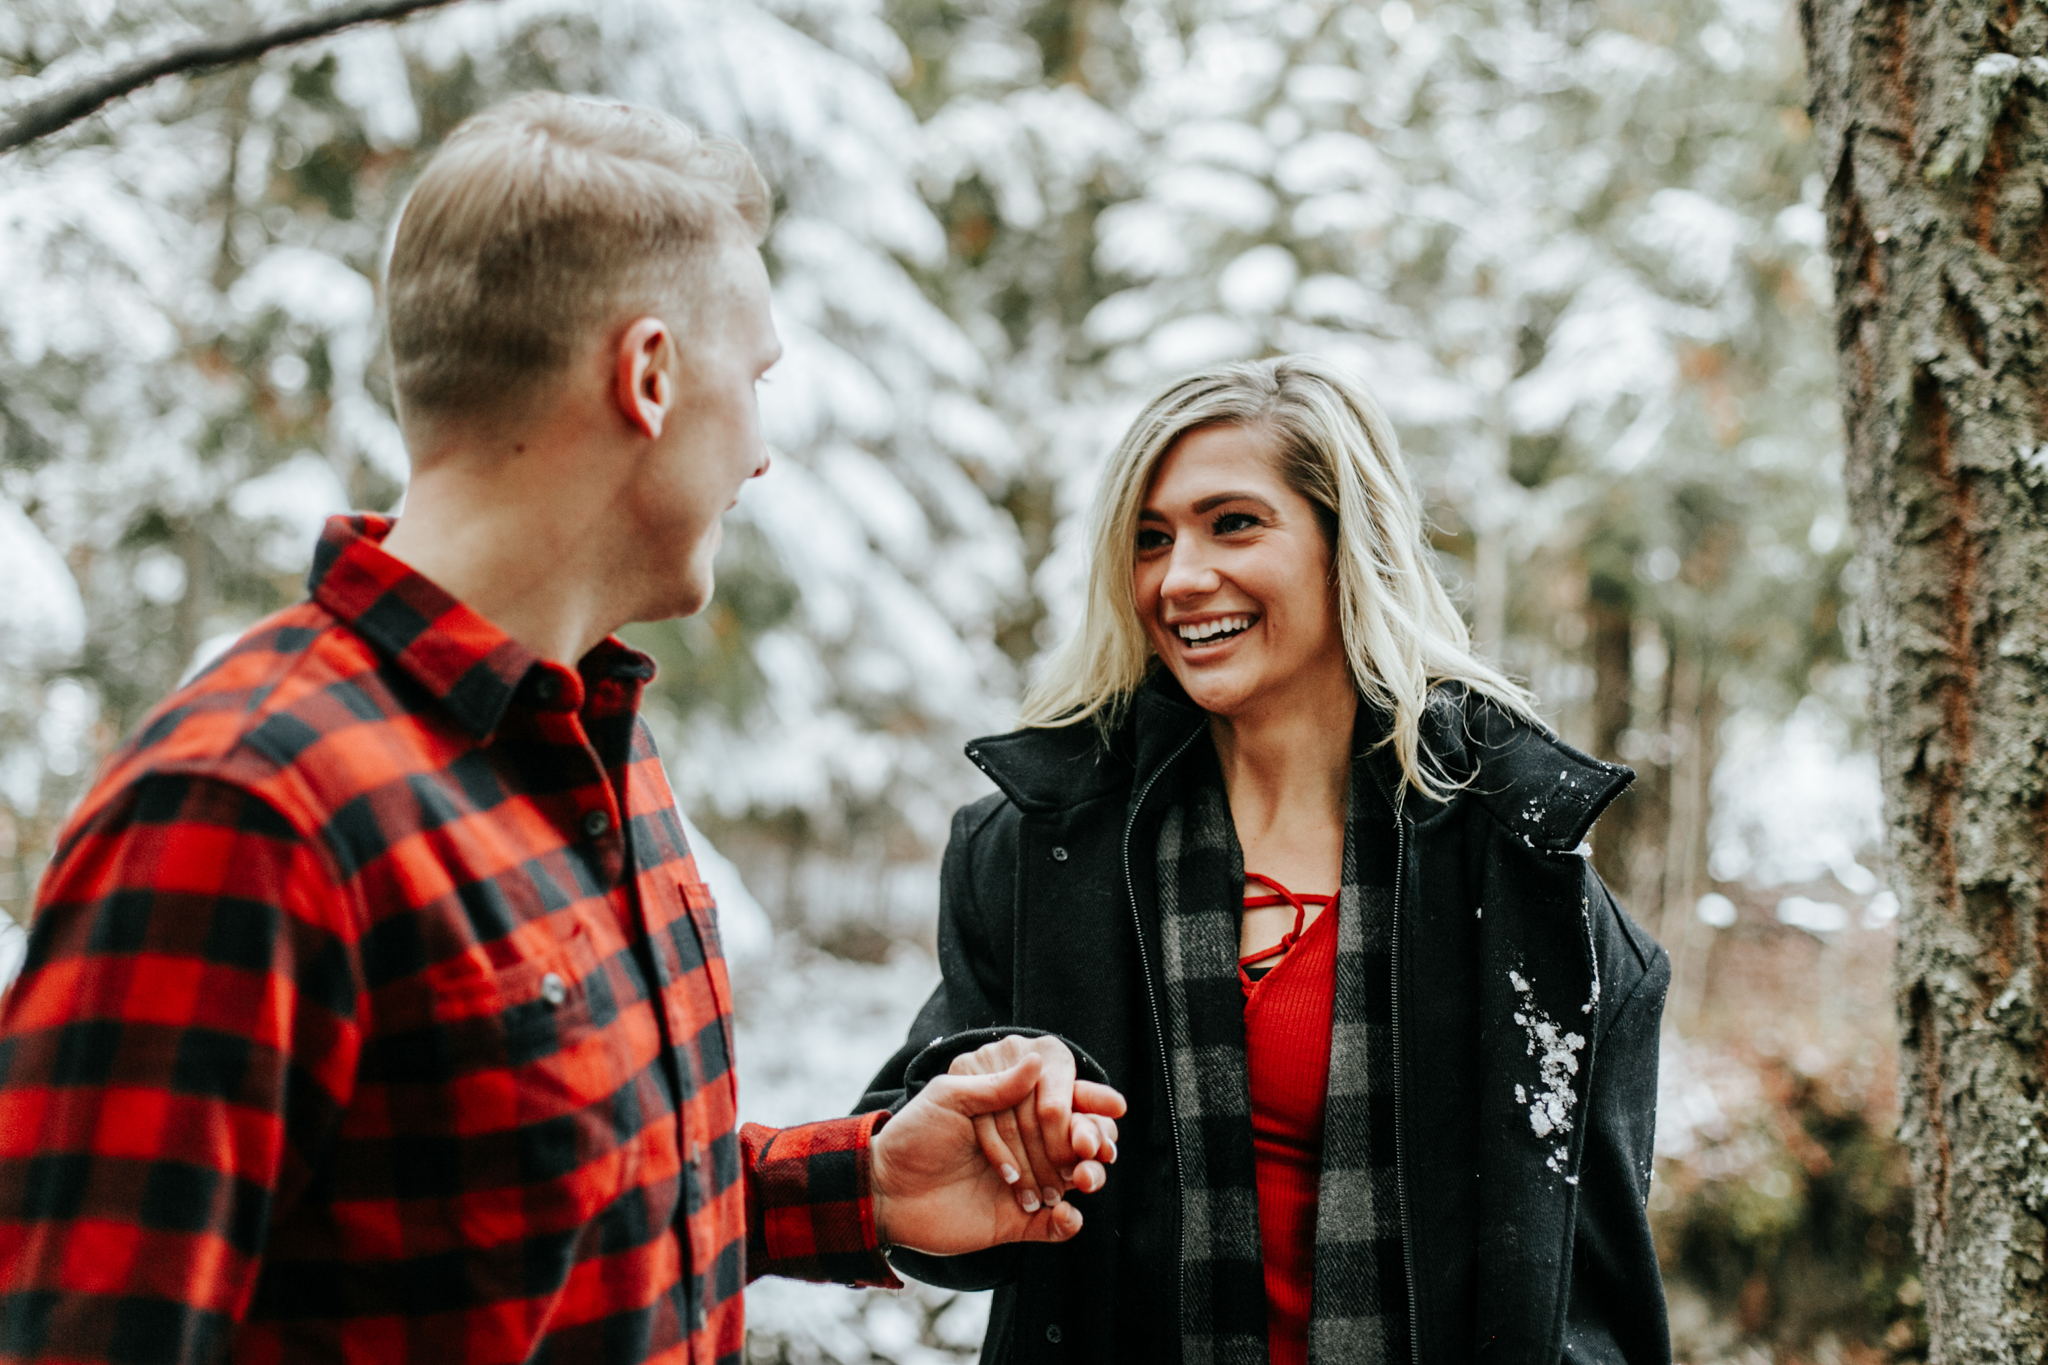 love-and-be-loved-photography-mountain-engagement-ashlyn-rob-perfect-fit-4-u-photo-image-picture-49.jpg